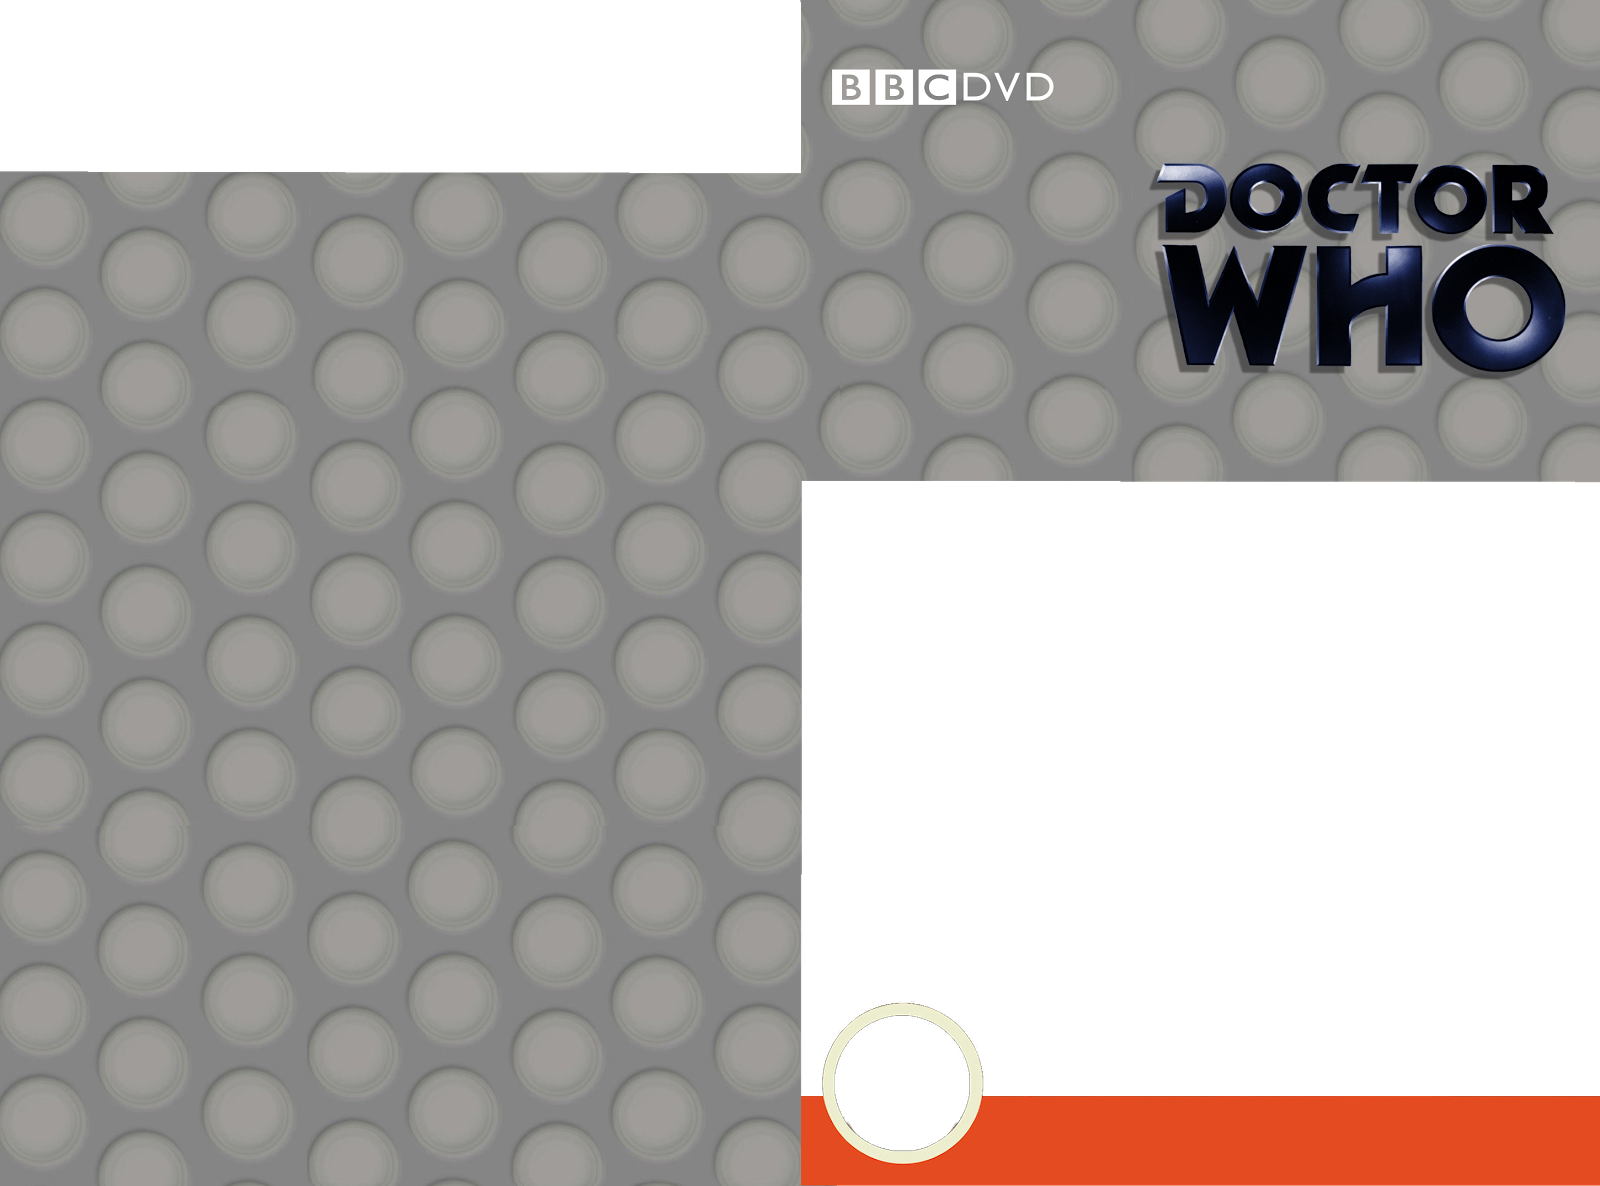 my doctor who dvd covers  templates